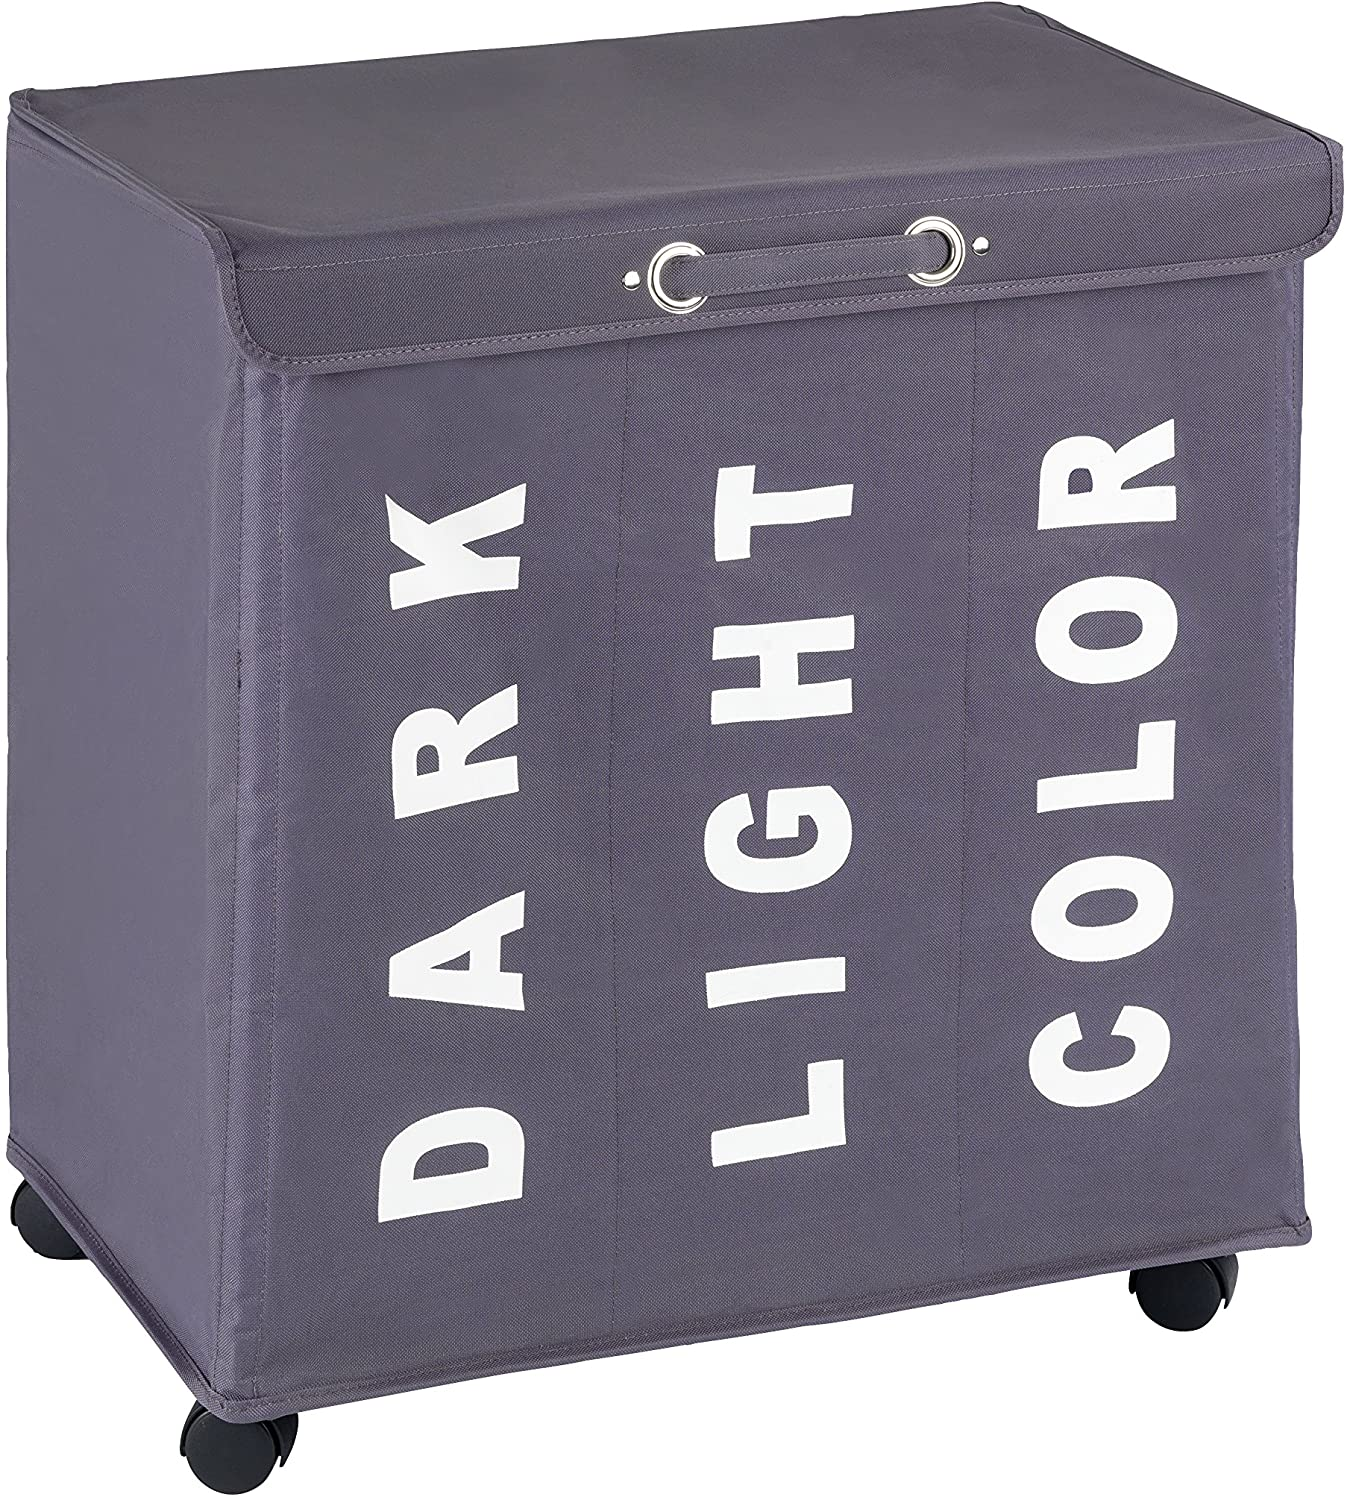 "WENKO Trivo Laundry Bin, 30.64 gallon/22"" x 23.6"" x 13.8"", Grey"